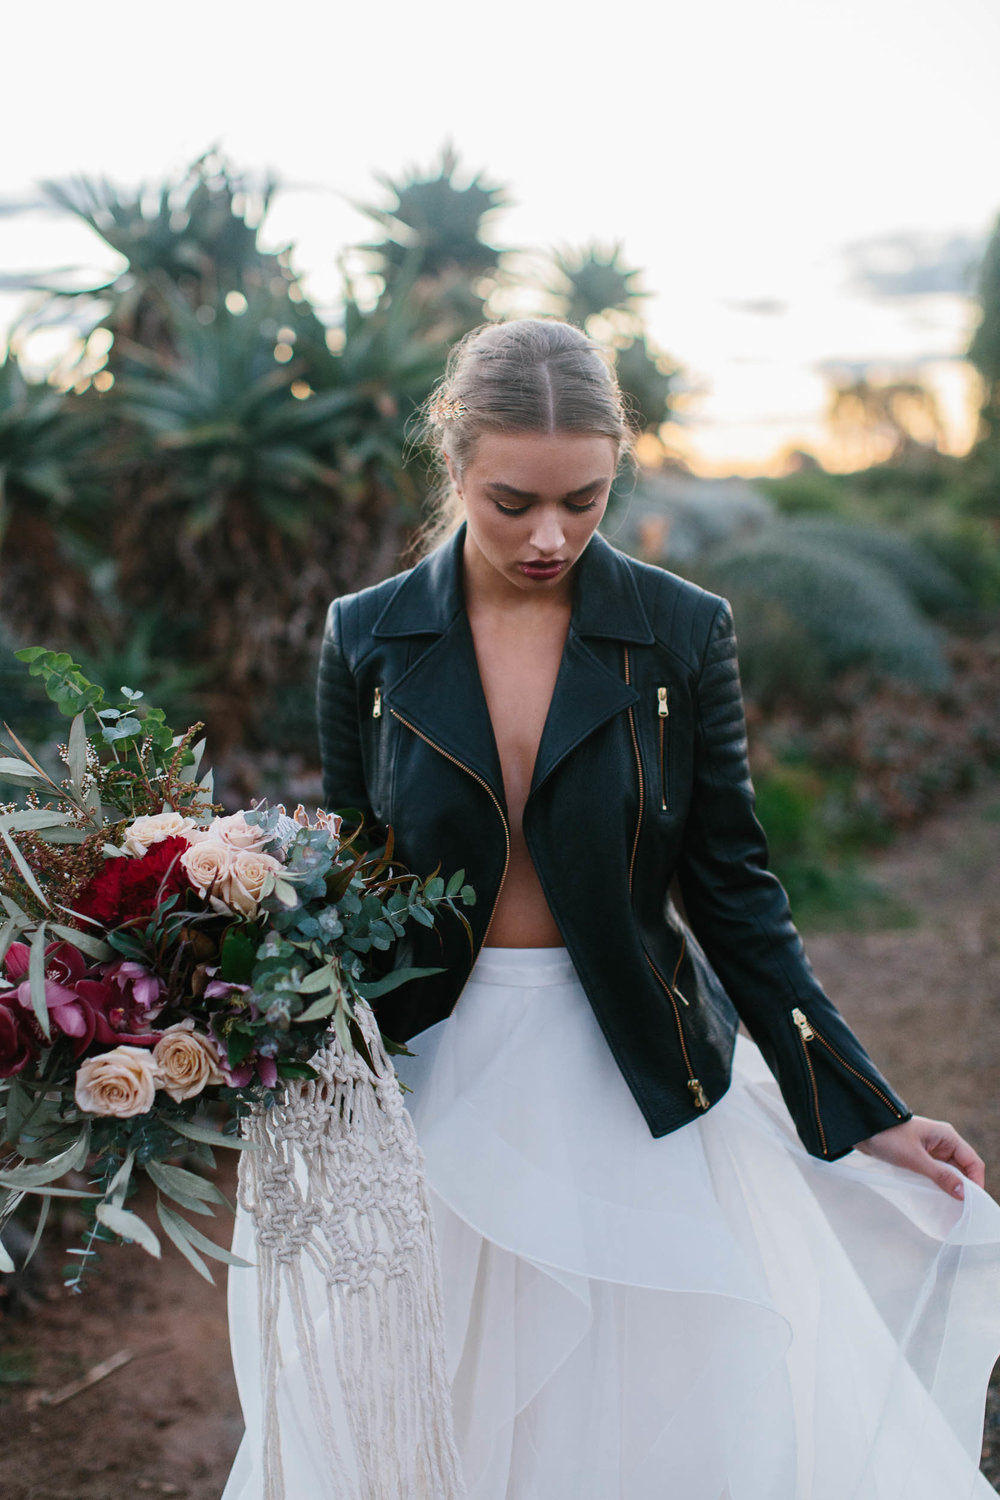 Kas-Richards-Ruby-and-James-Stylist-Cactus-Country-Karen-Willis-Holmes-Bridal-One-Heart-Studios-Boho-Wedding-182.jpg